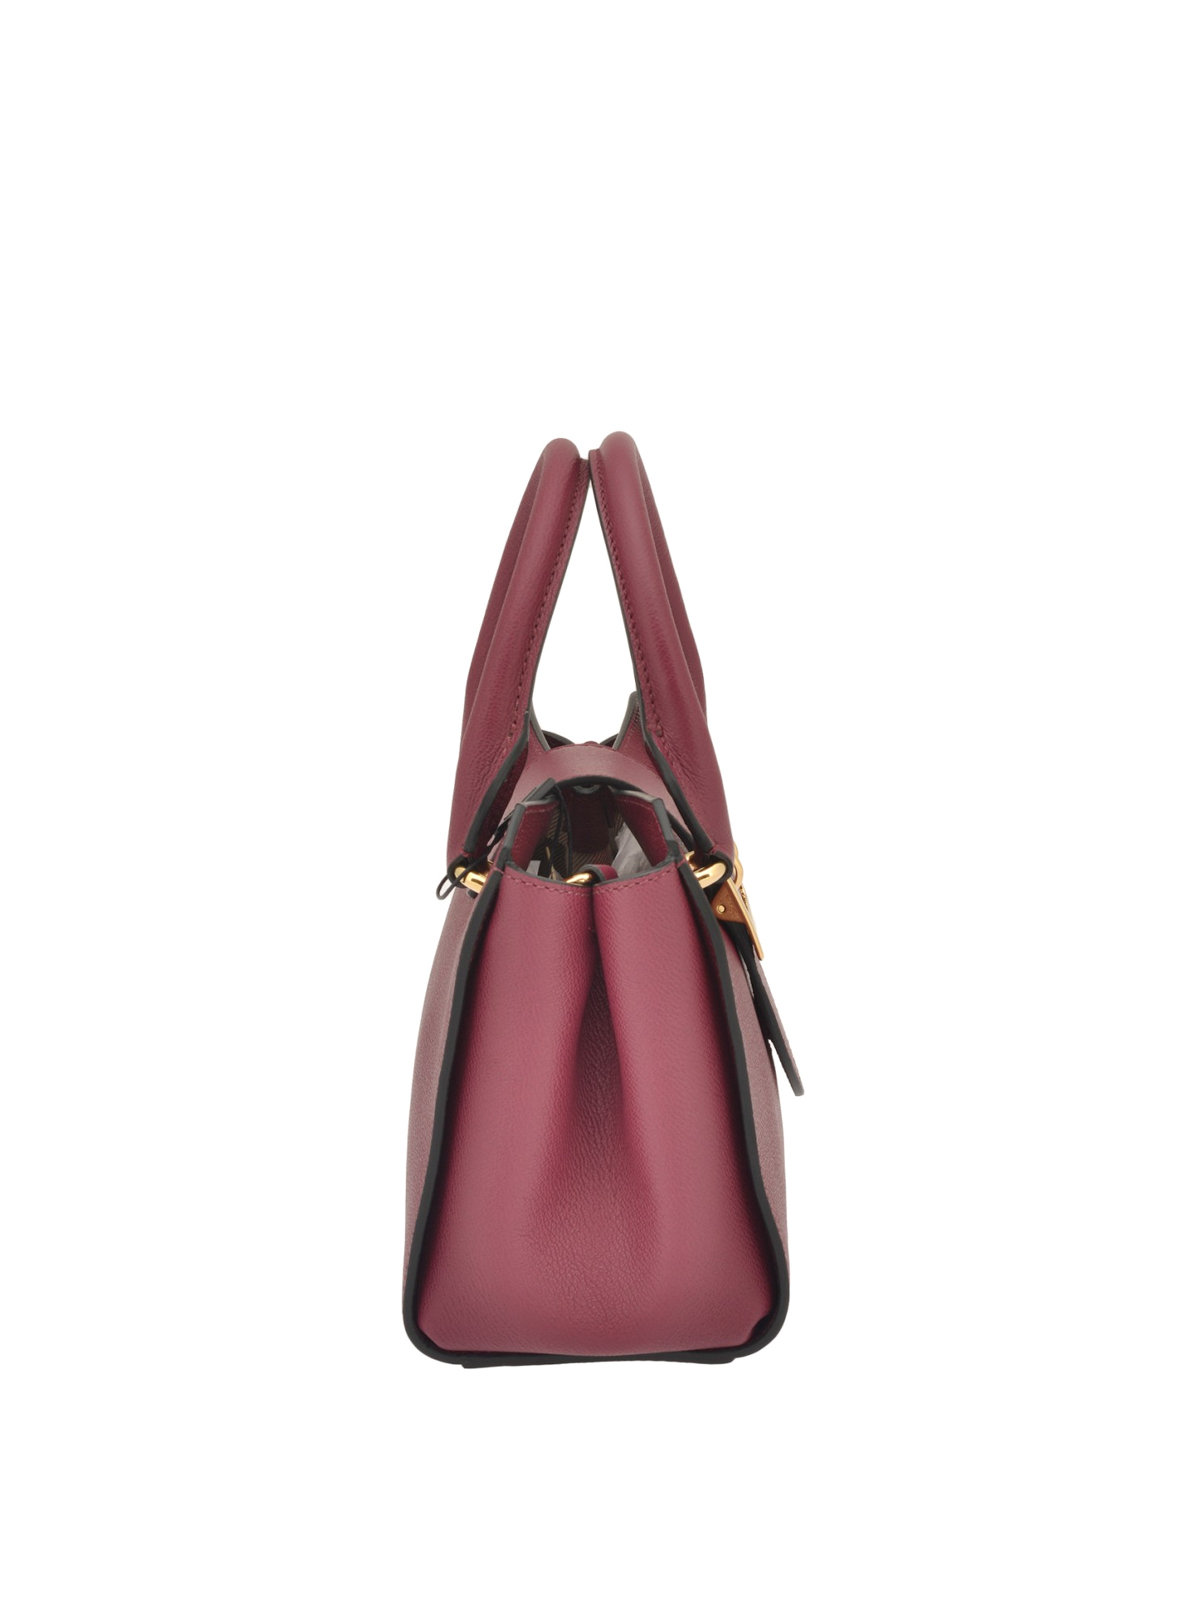 Burberry - The Buckle small tote - totes bags - 4033766  01873b3032ced